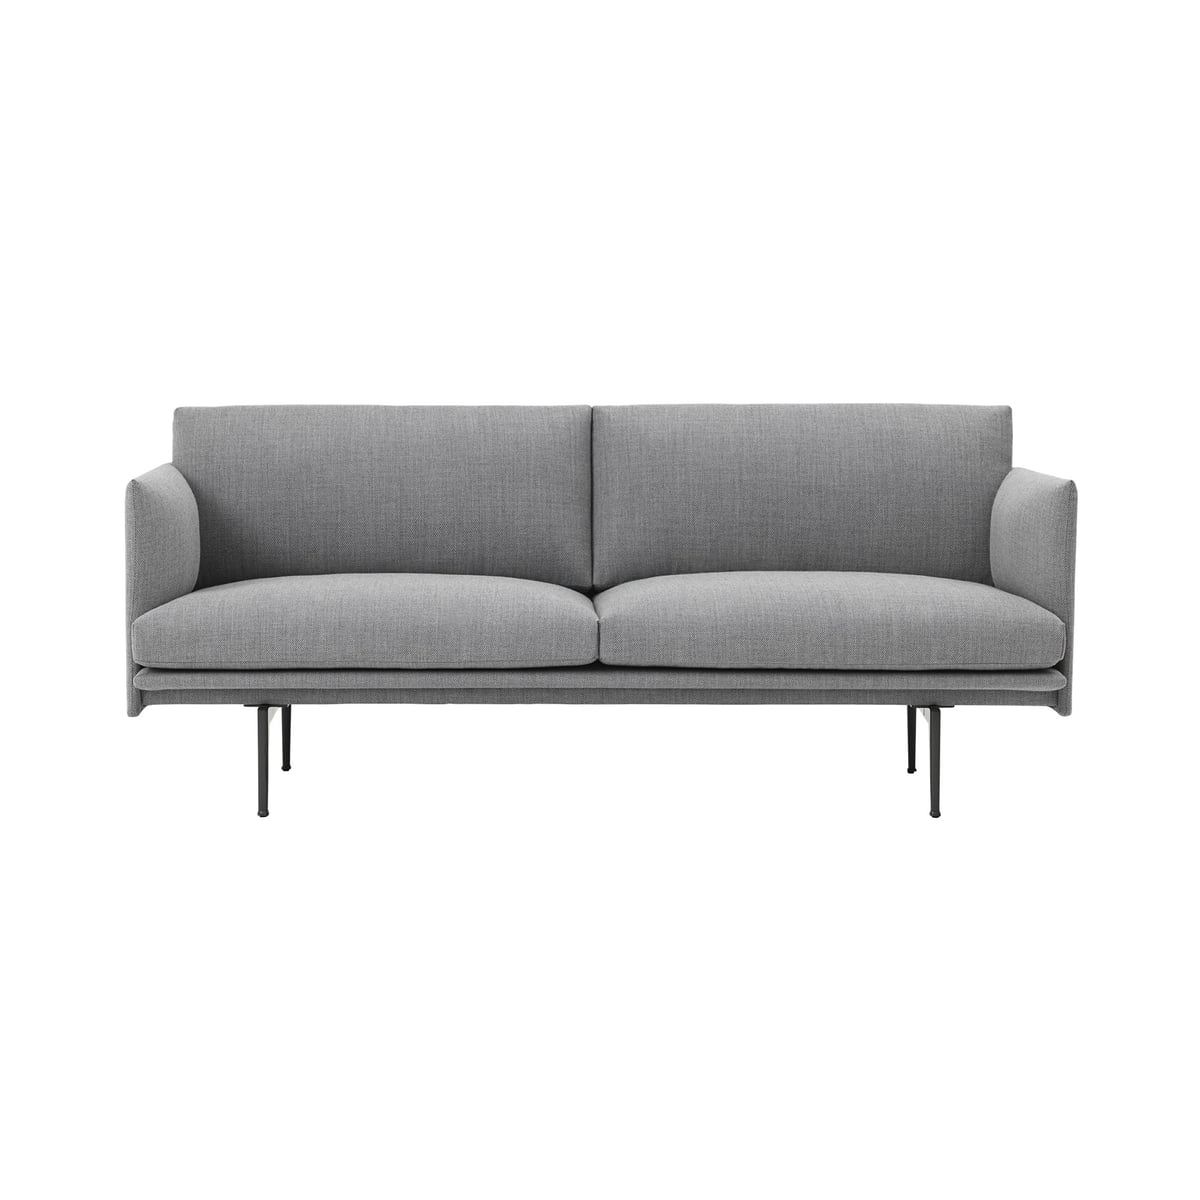 outline sofa 2 sitzer von muuto connox shop. Black Bedroom Furniture Sets. Home Design Ideas